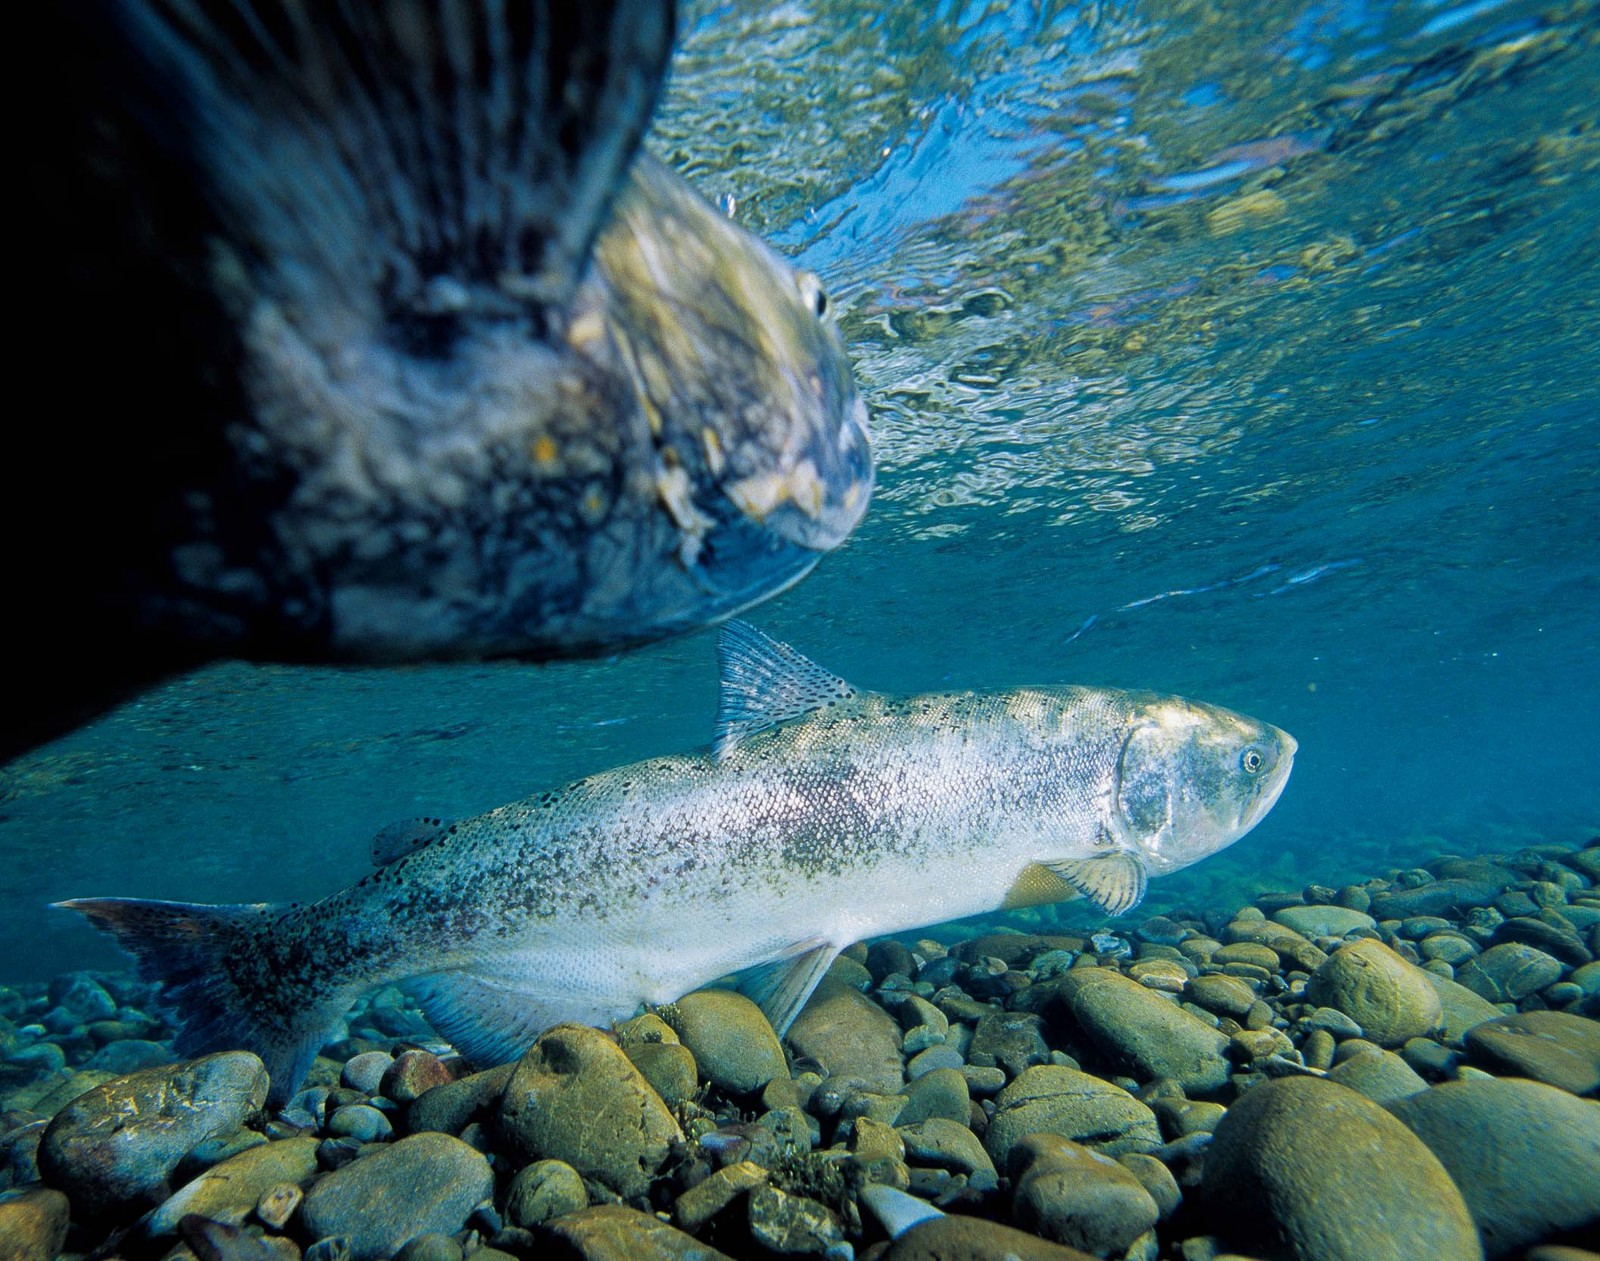 A female quinnat salmon noses slowly through the shallows, look- ing for a place to lay her eggs, while a male shadows her, eager for the chance to fertilise the precious cargo. In a good year, as many as 75,000 salmon make their way from the sea to their birth streams in the high country to breed. But they face many obstacles and hazards: trawl-netters at sea, dams in the rivers, reduced water flows due to irrigation take-off and, of course, legions of fanatical anglers tracking their every move.